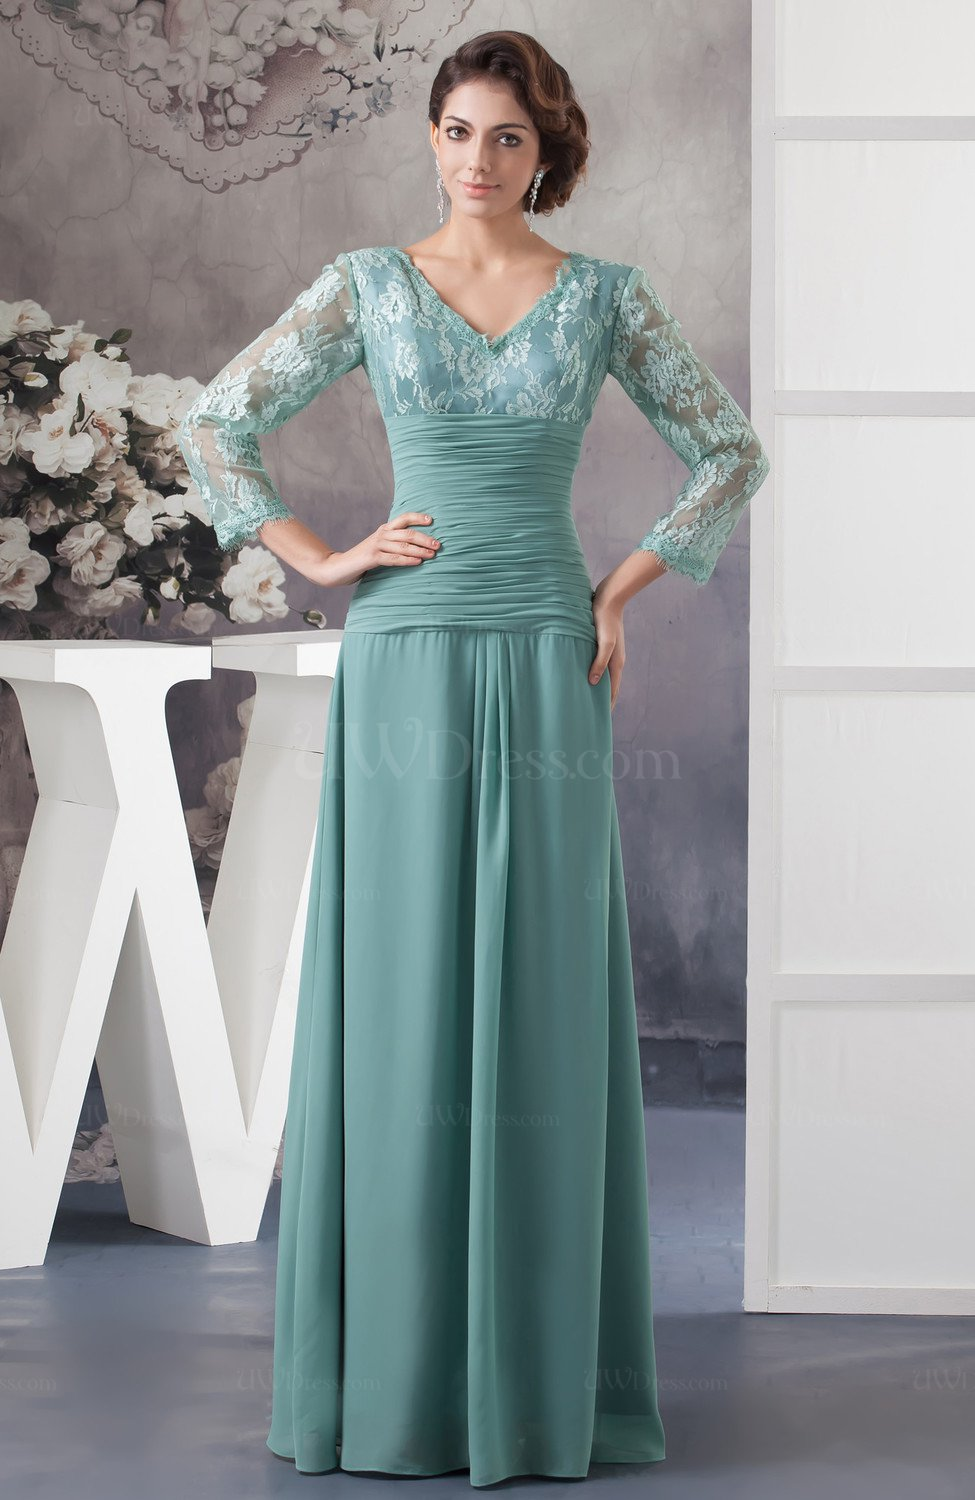 Long Sleeve Party Dress With Sleeves Spring Classy Elegant